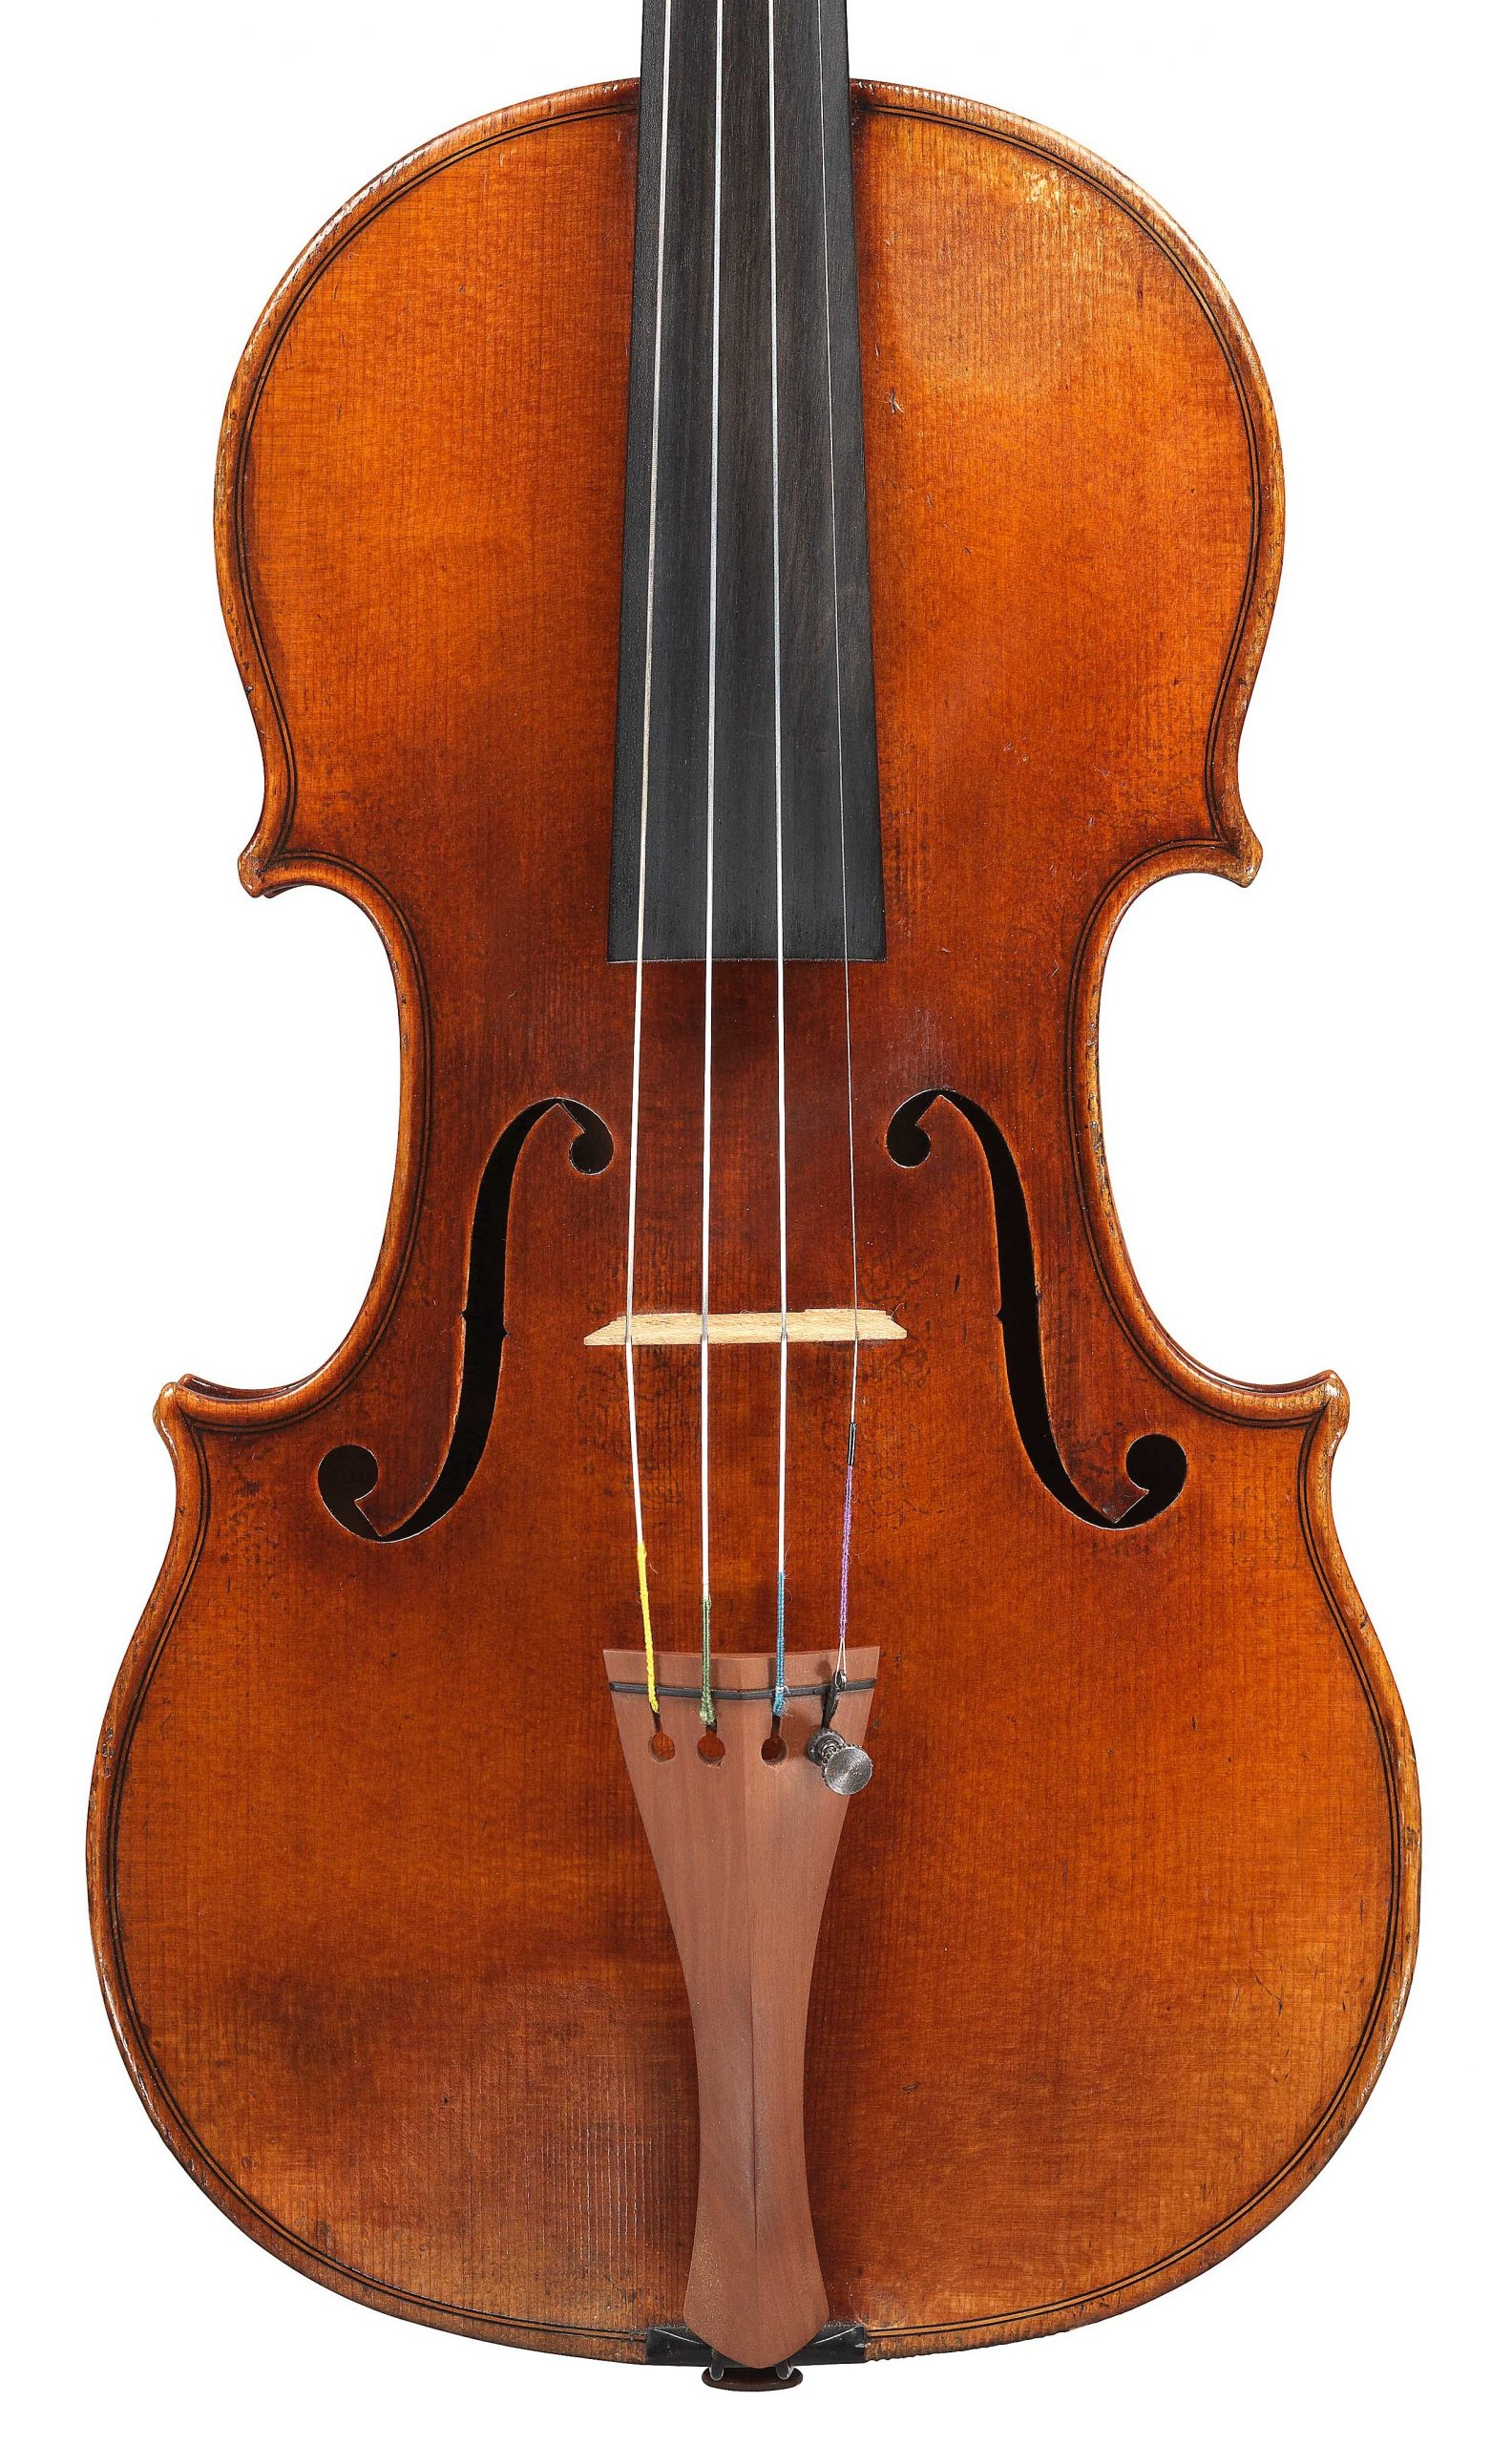 Front of violin by JB Vuillaume, ex-Sin, dated 1865, exhibited by Ingles & Hayday at Sotheby's in 2012 and now played by Hilary Hahn